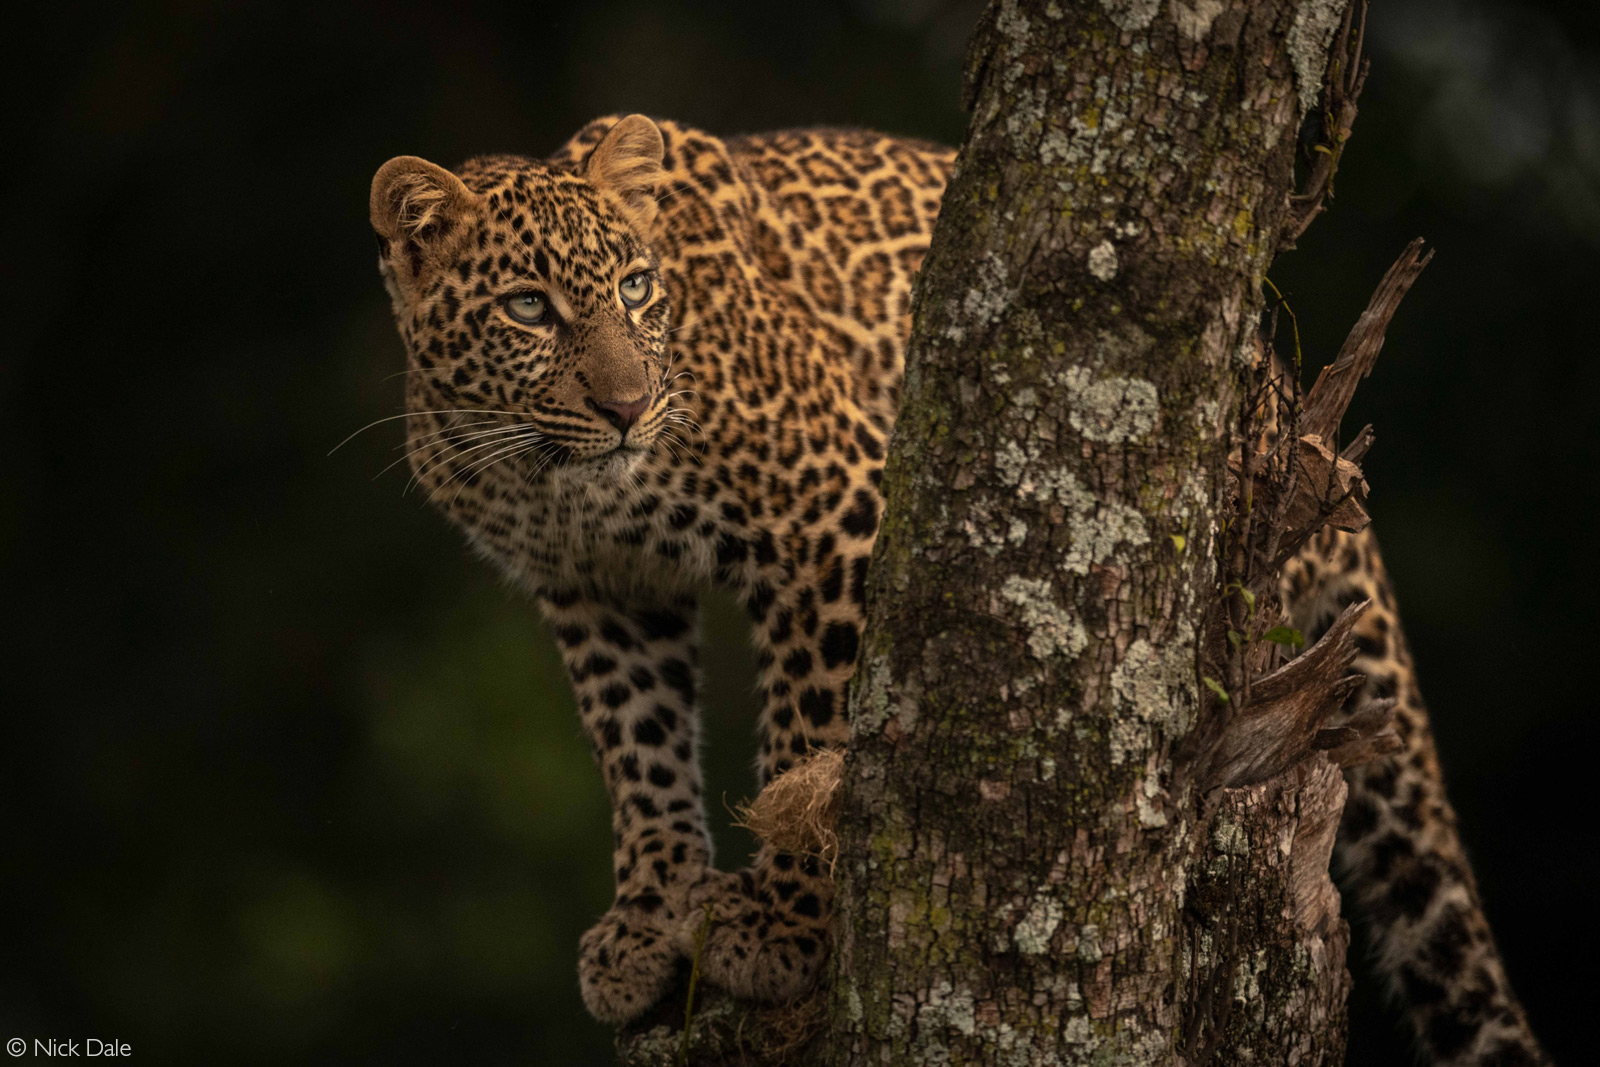 A leopard sits in the forked trunk of a tree. Serengeti National Park, Tanzania © Nick Dale